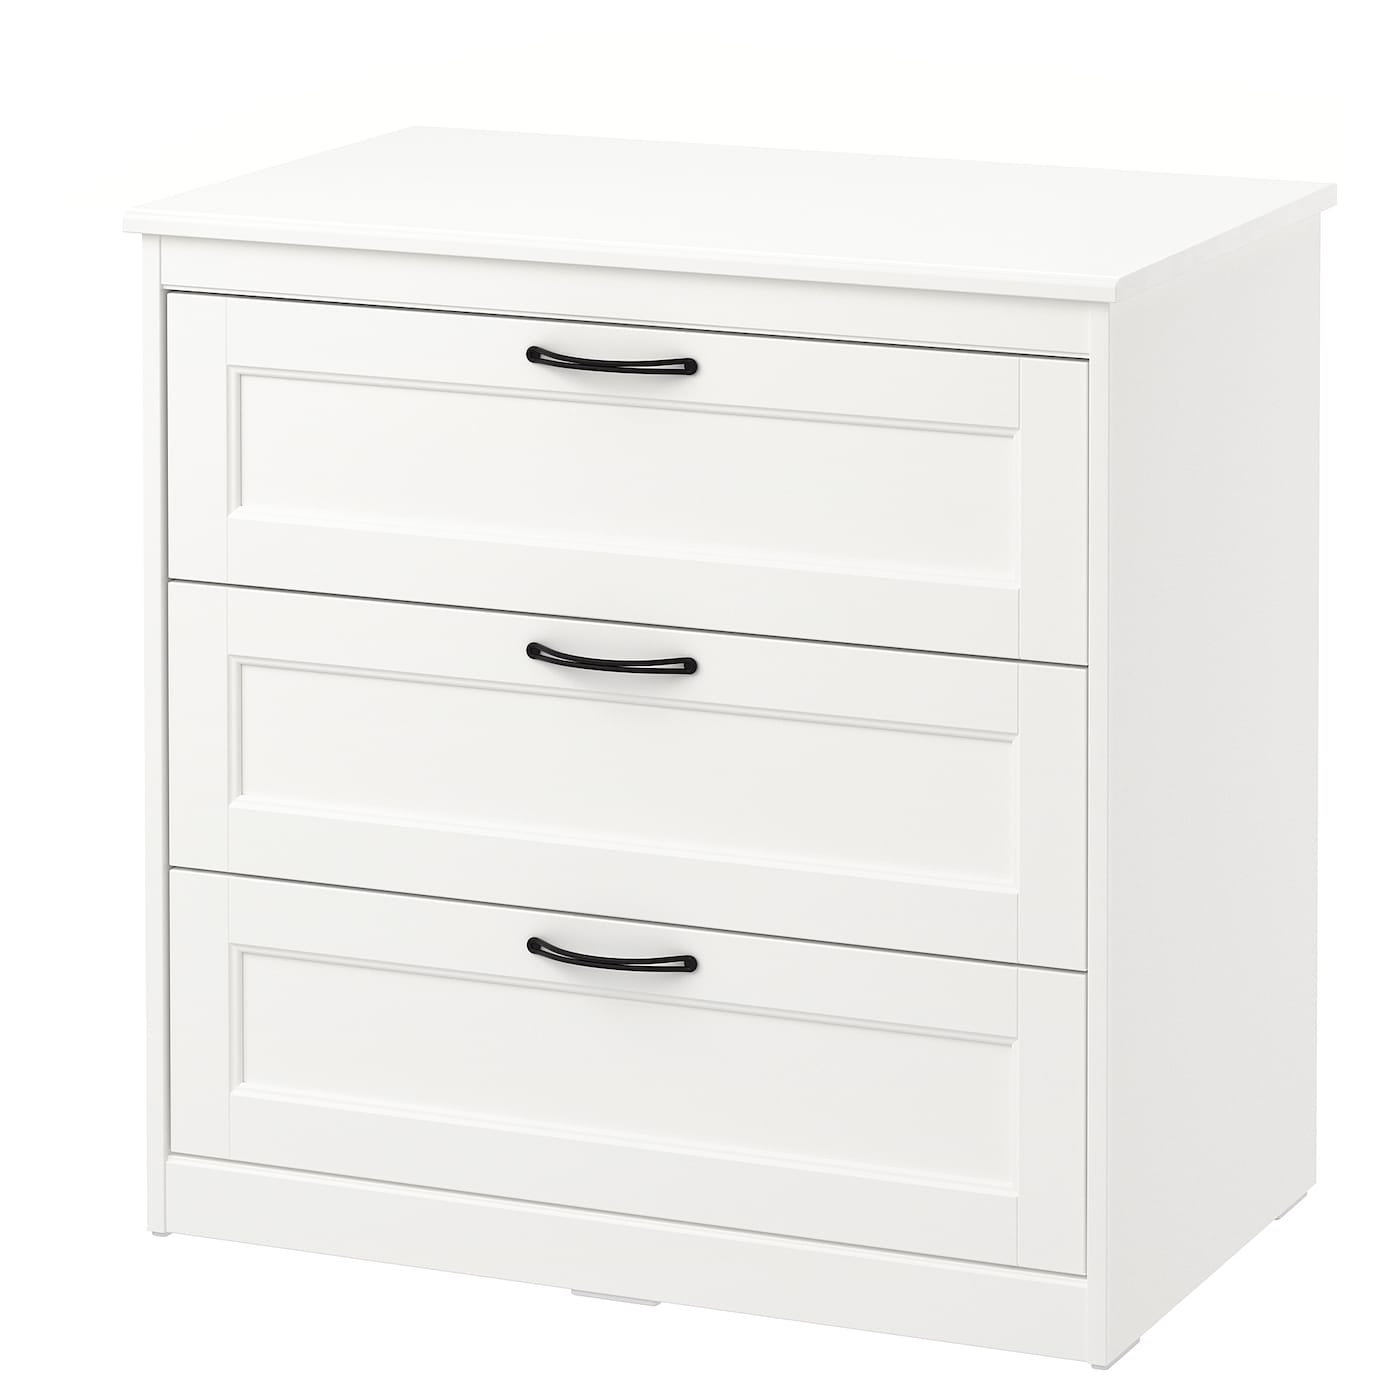 IKEA SONGESAND commode 3 tiroirs